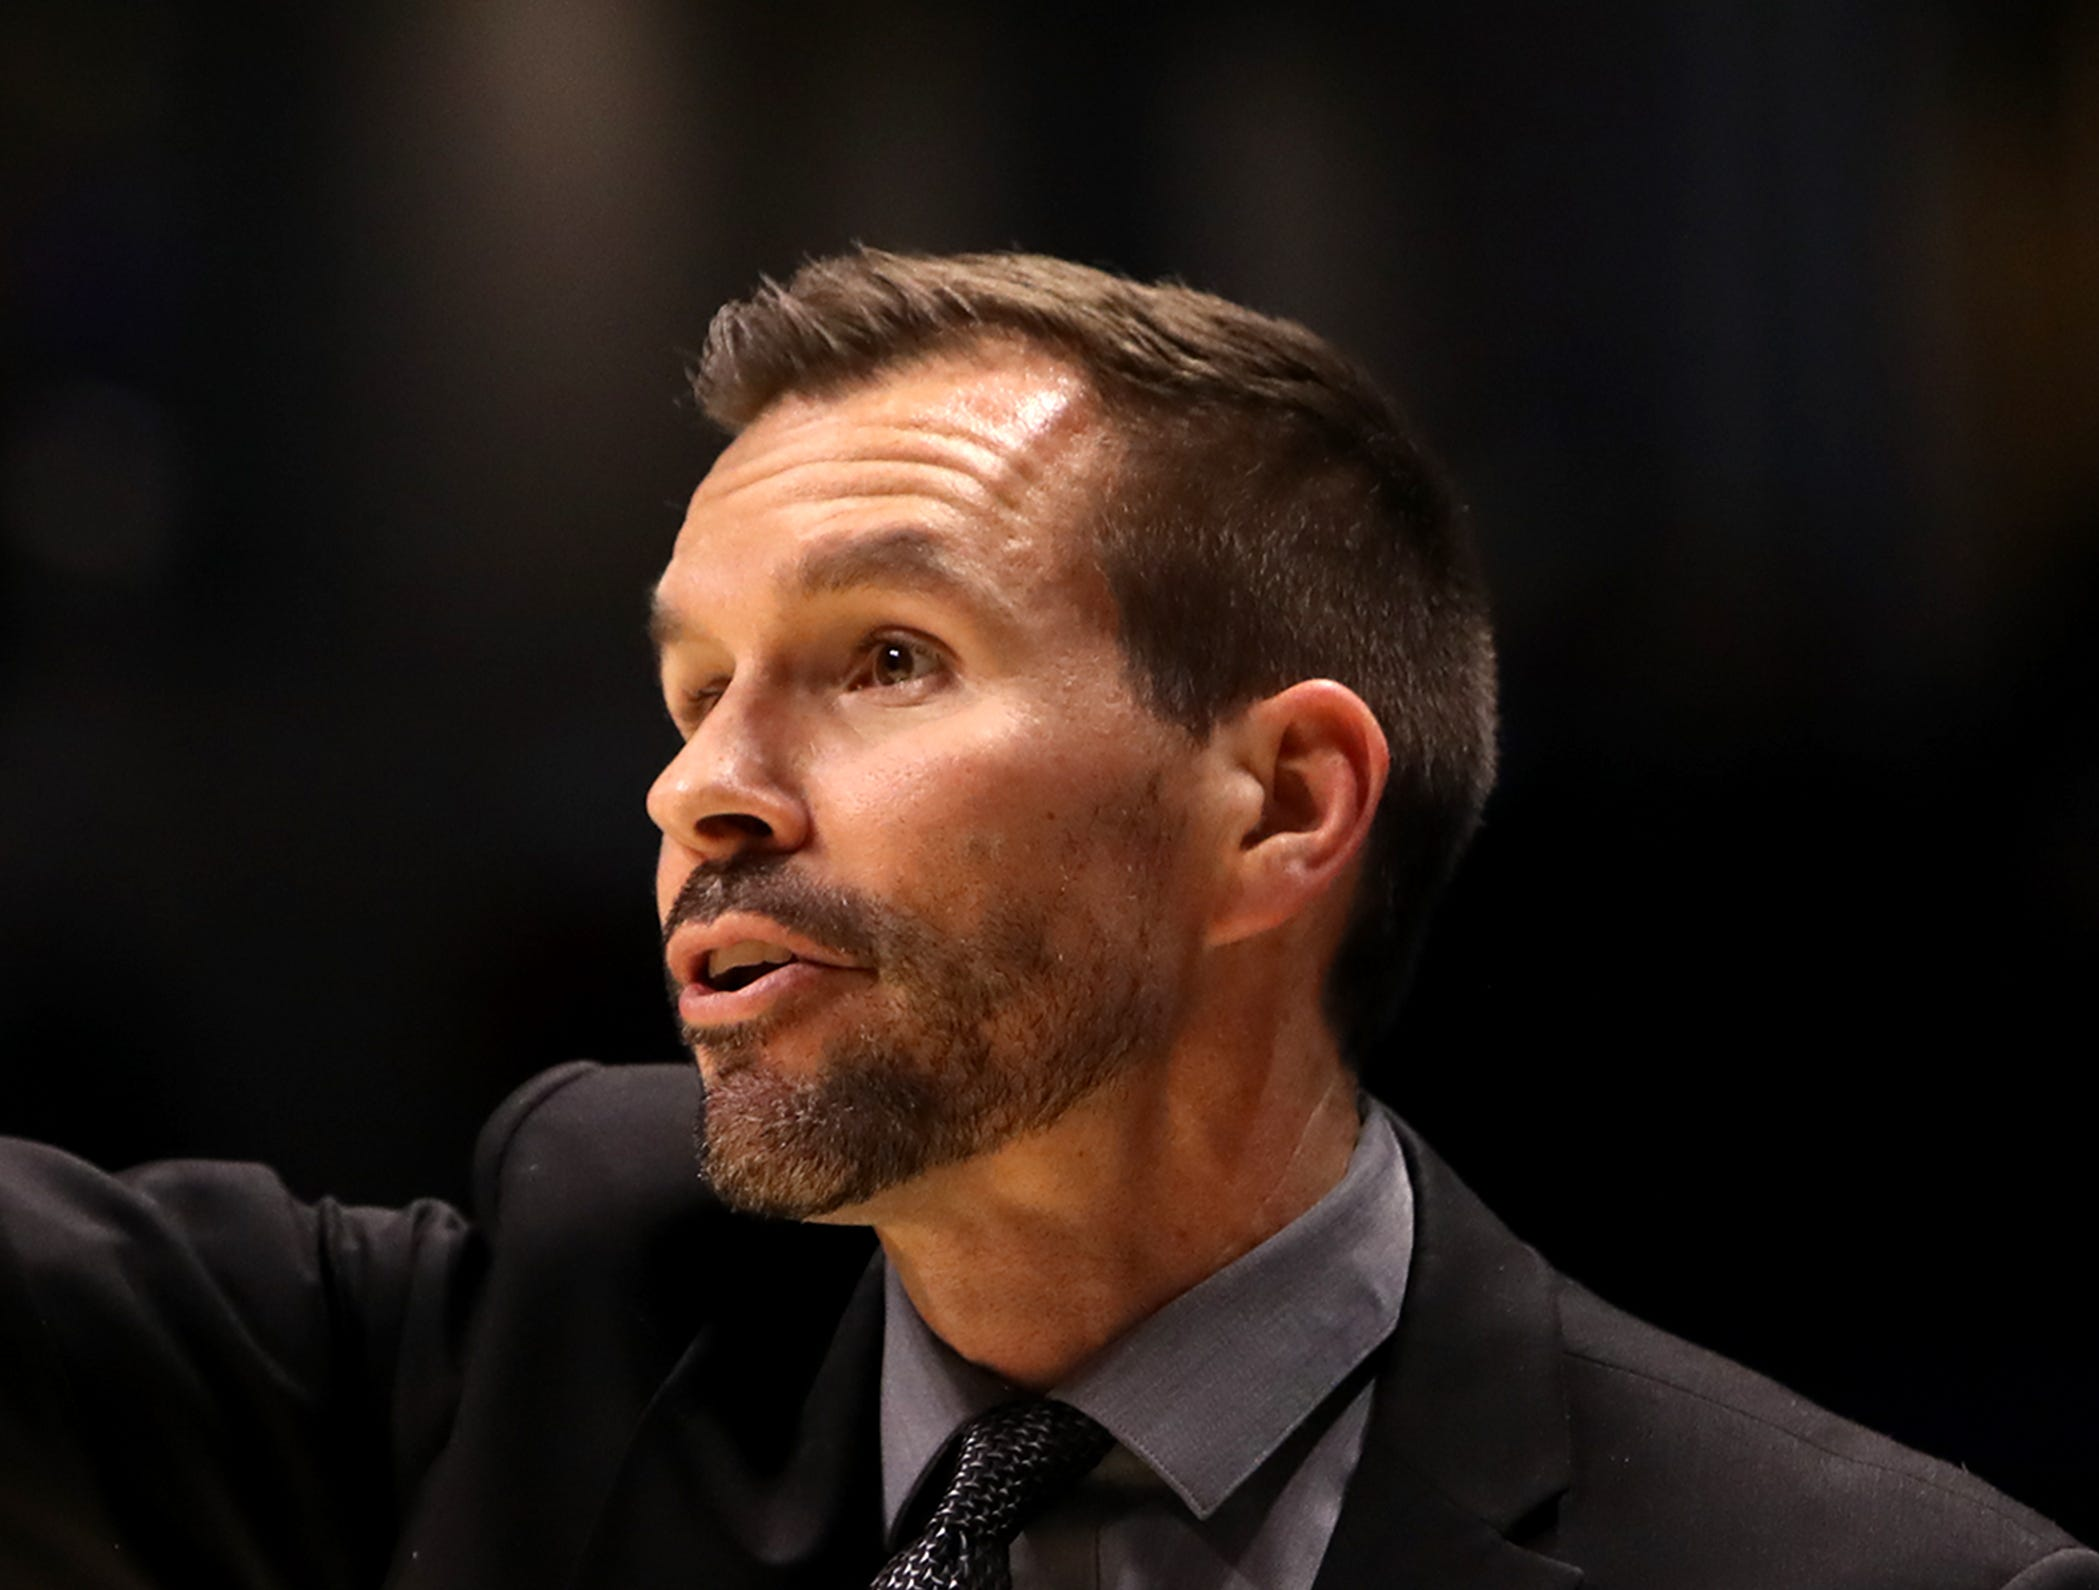 Lakota East head coach Clint Adkins gives instructions to his team in the boys regional semifinal March 13, 2019, at Xavier University's Cintas Center. Moeller defeated Lakota East 47-33.